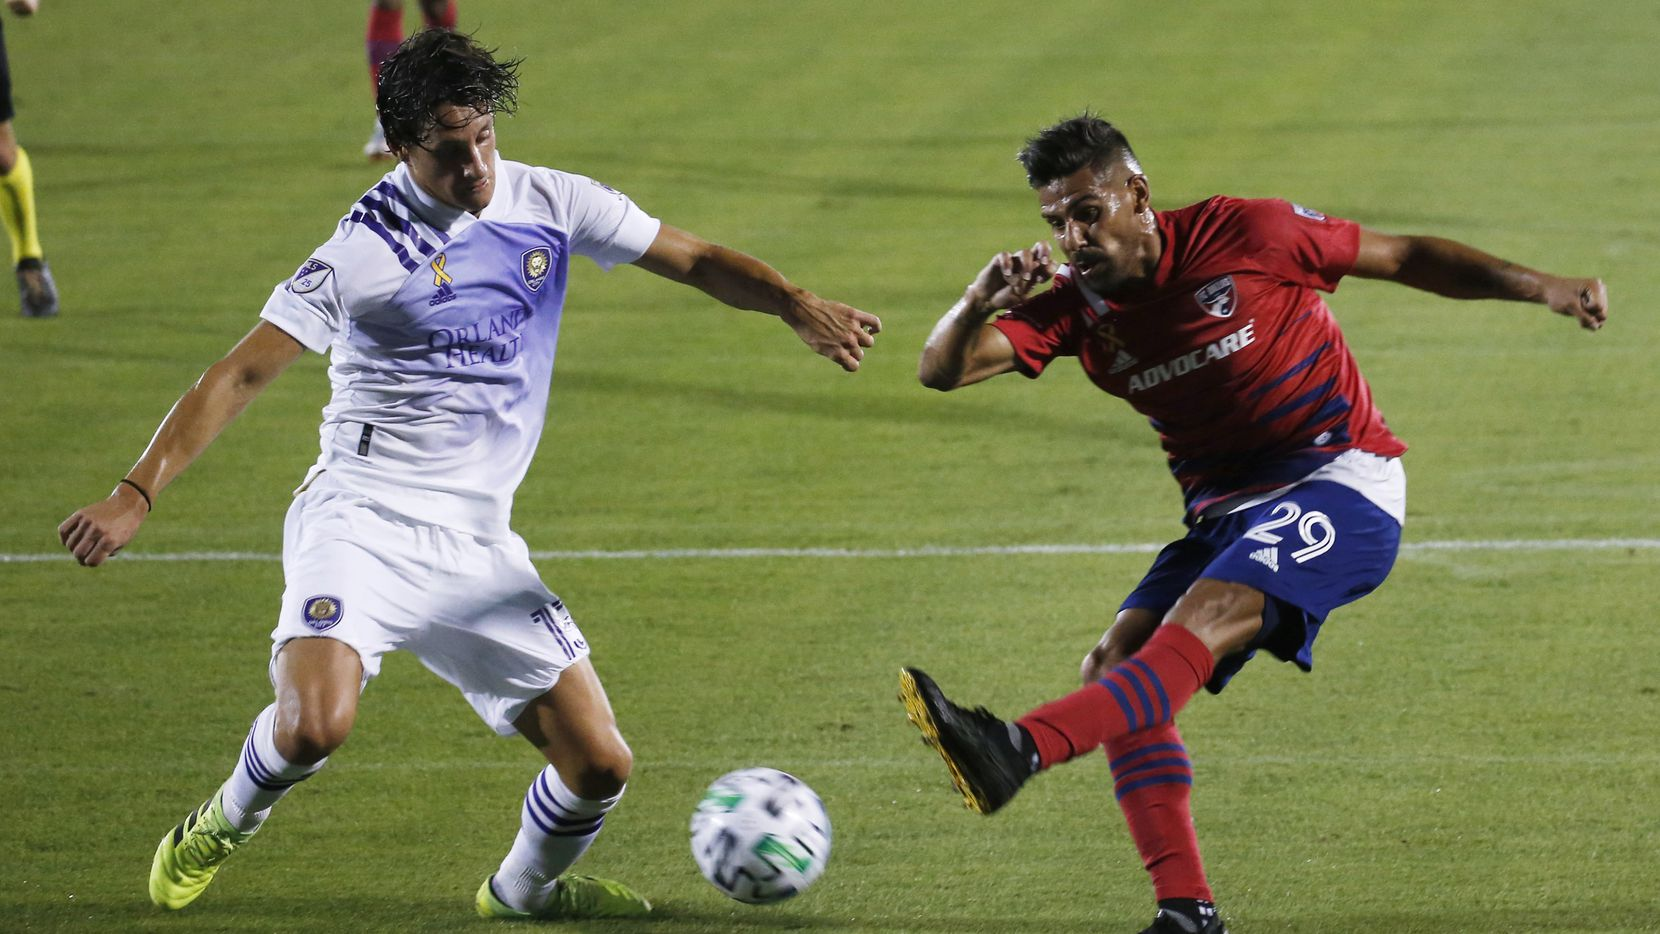 FC Dallas forward Franco Jara (29) attempts a shot in front of Orlando City defender Rodrigo Schlegel (15) during the first half of play at Toyota Stadium in Frisco, Texas on Sunday, September 27, 2020.